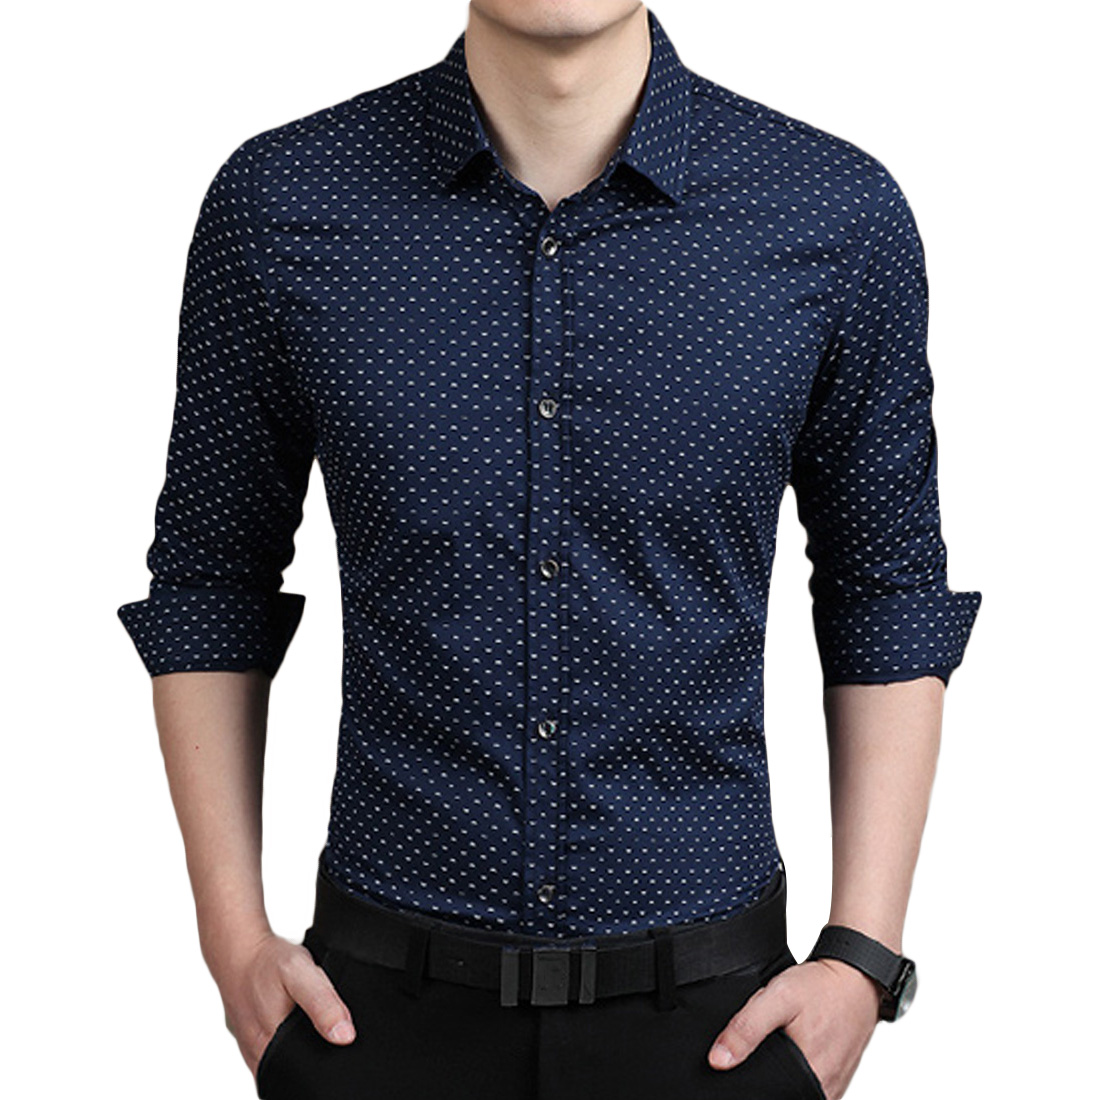 Mens short sleeve dress shirt in mens t shirts compare for Mens polka dot shirt short sleeve